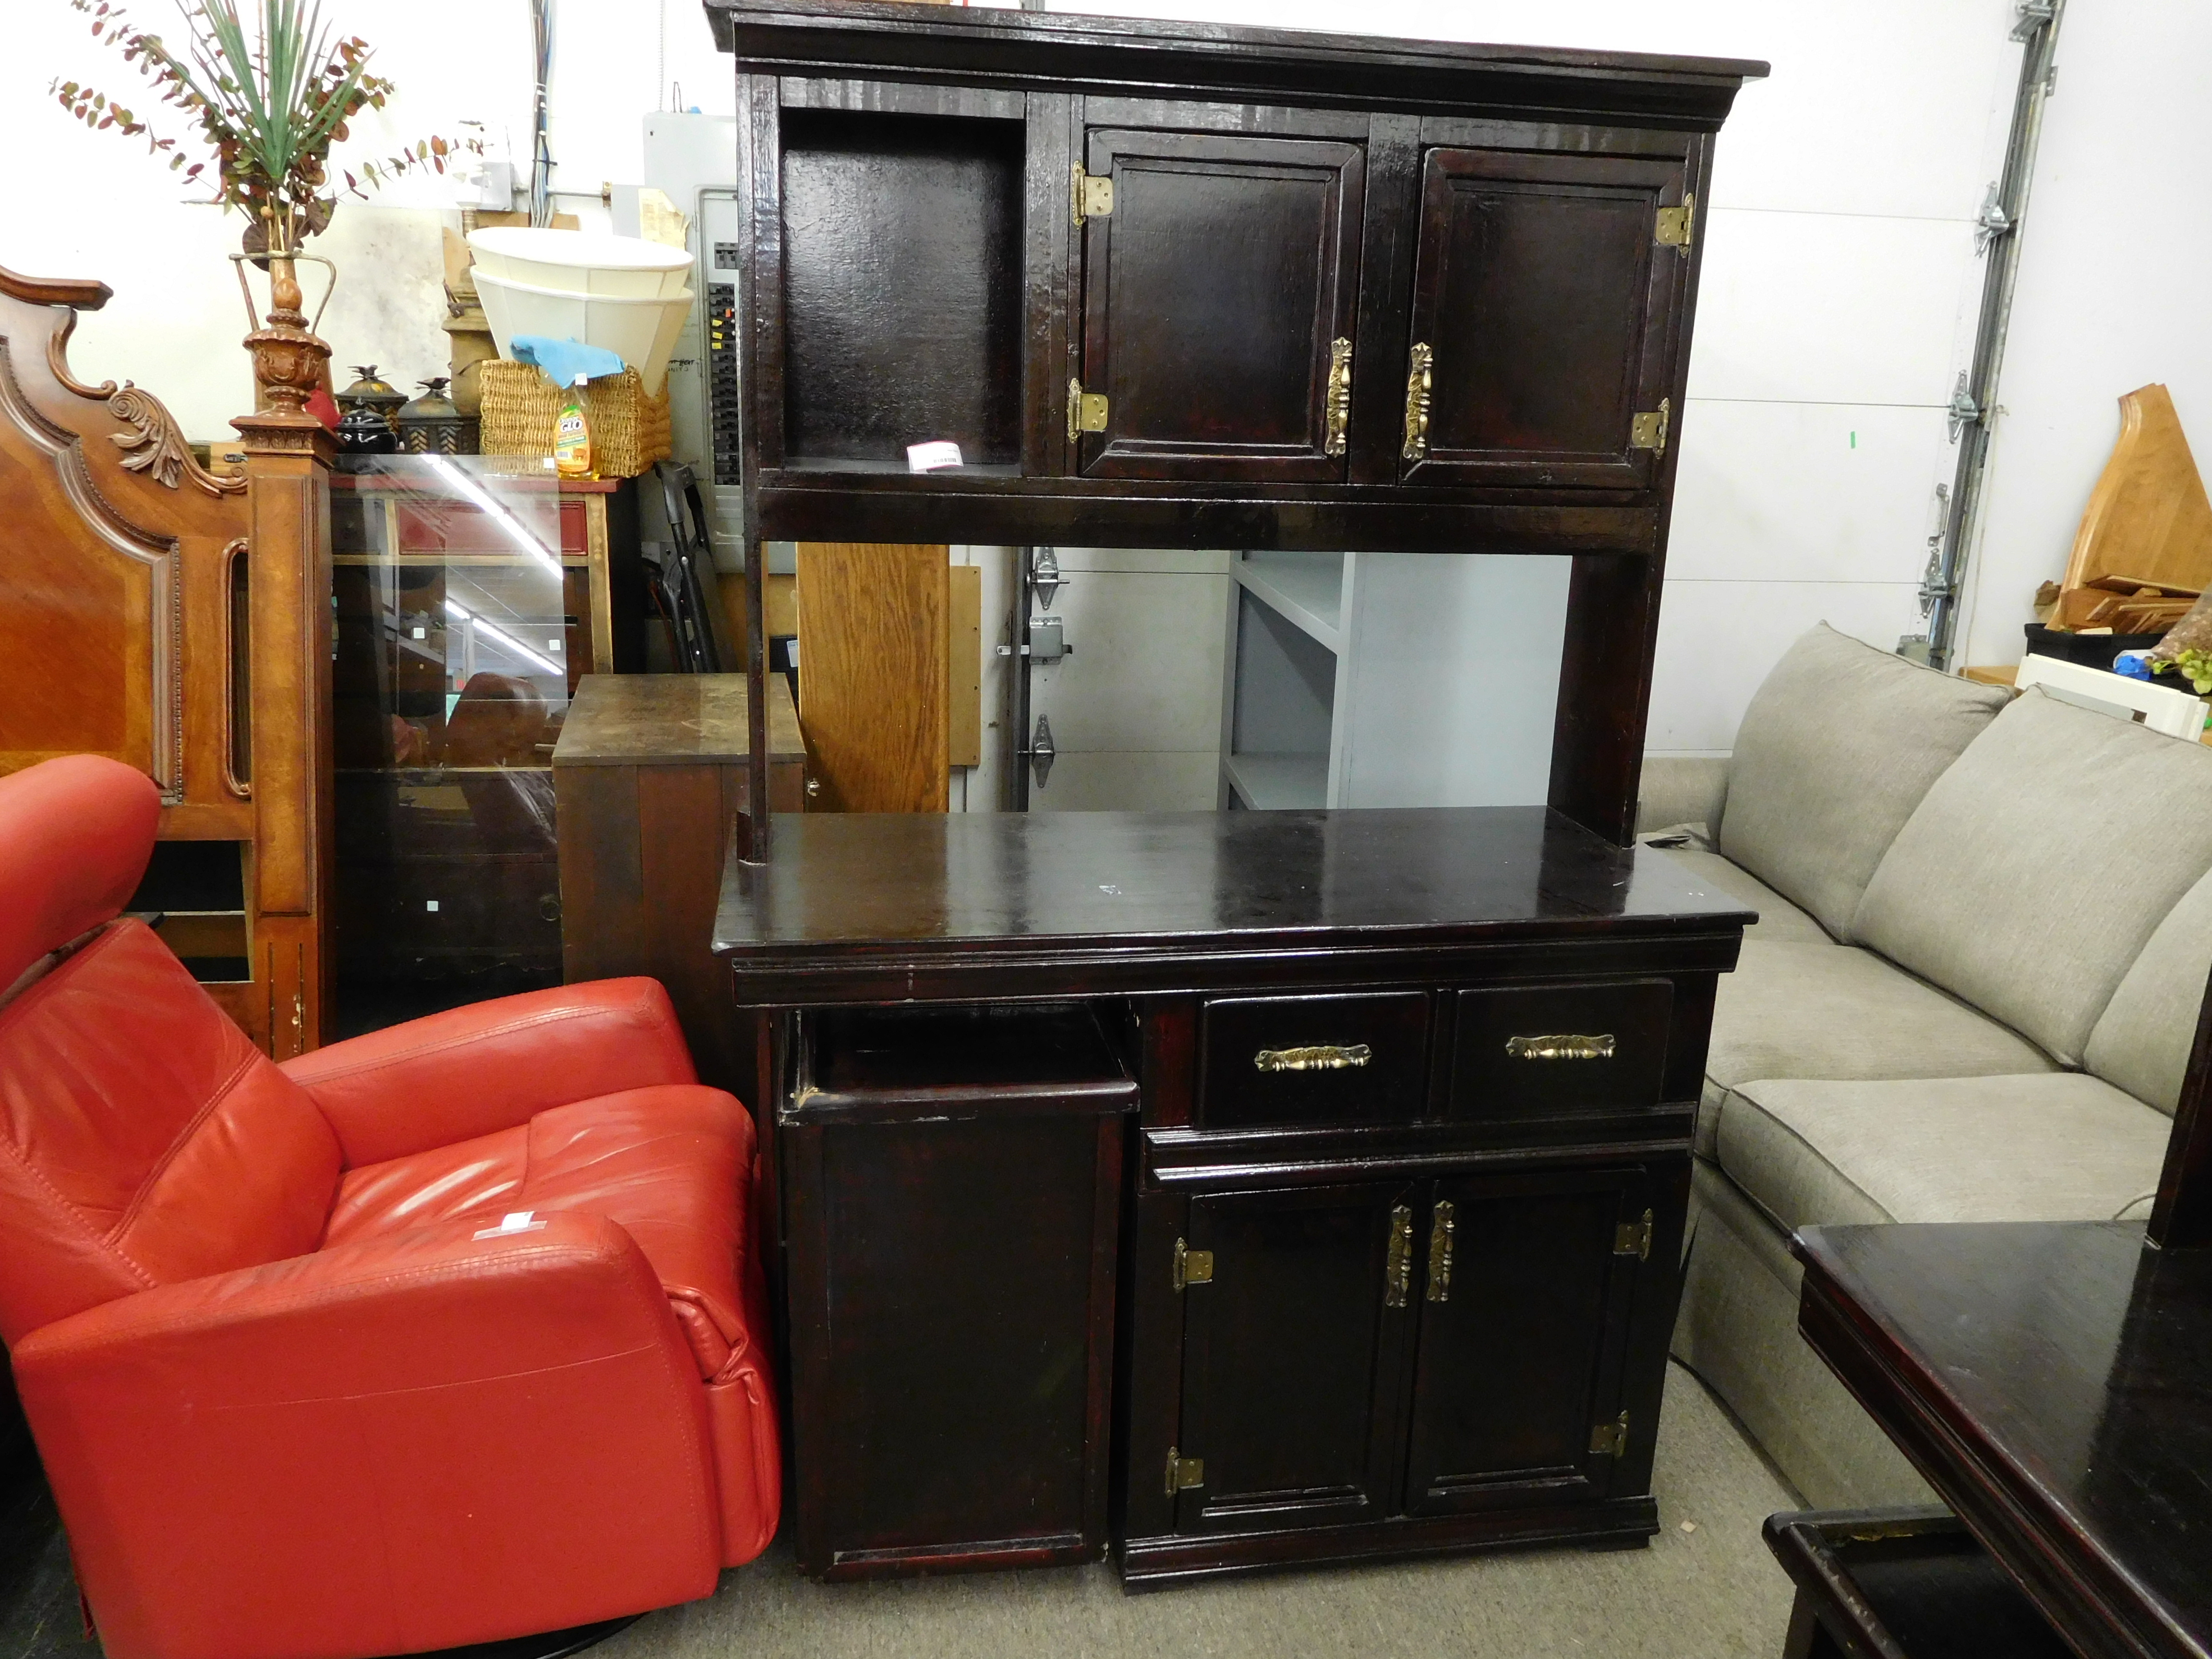 Black Lacquered Storage Cabinet (Was a tattoo station)